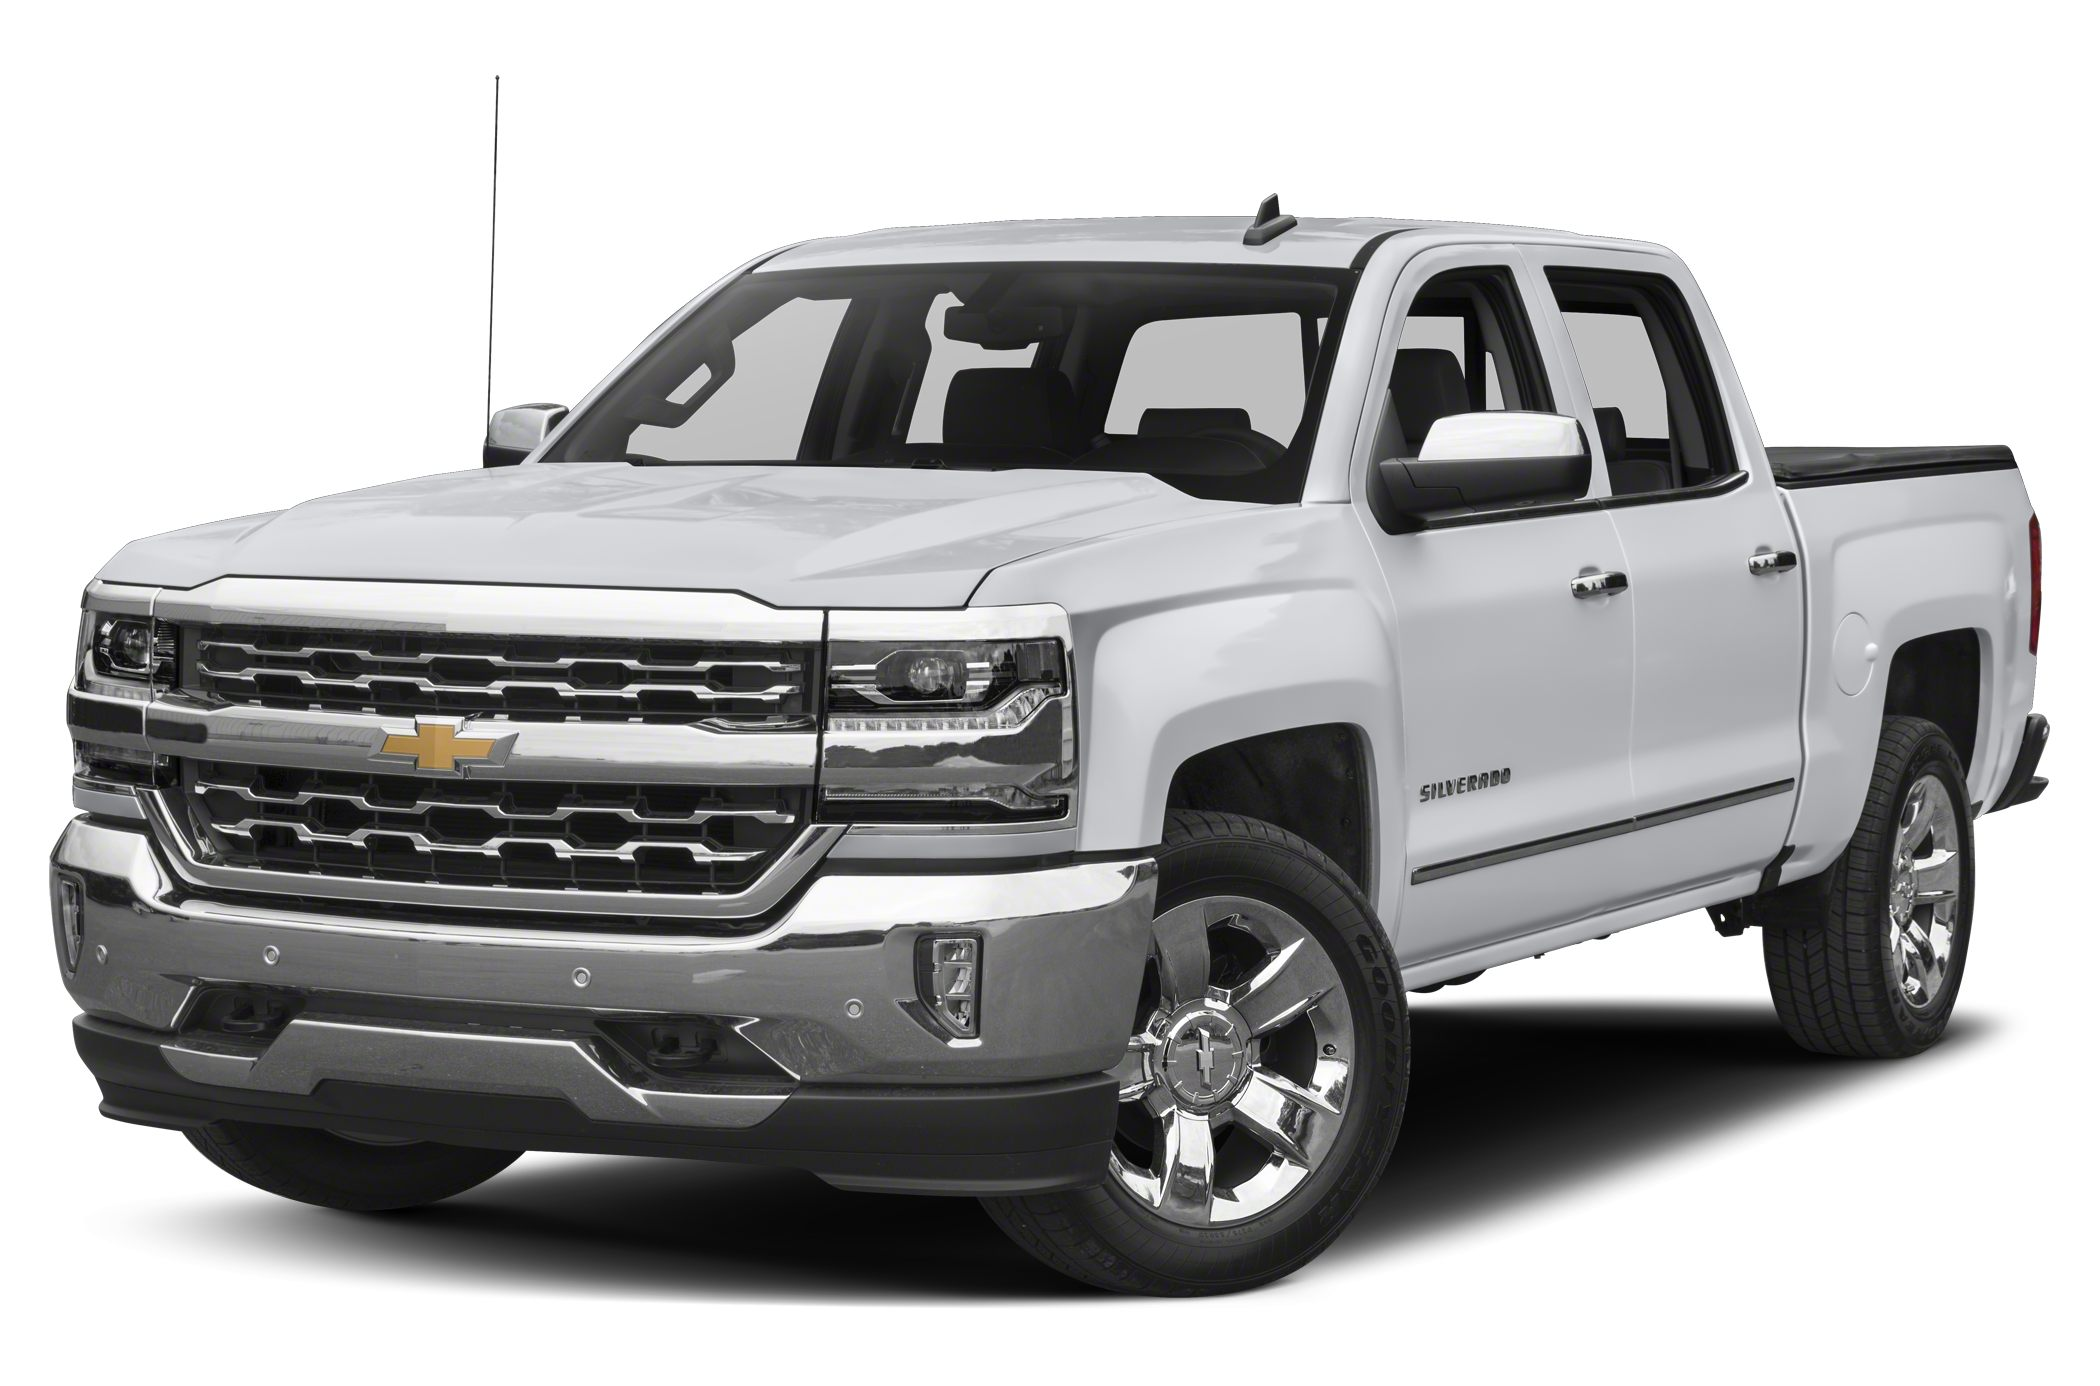 2017 Chevrolet Silverado 1500 Ltz W 1lz 4x2 Crew Cab 5 75 Ft Box 143 In Wb Specs And Prices